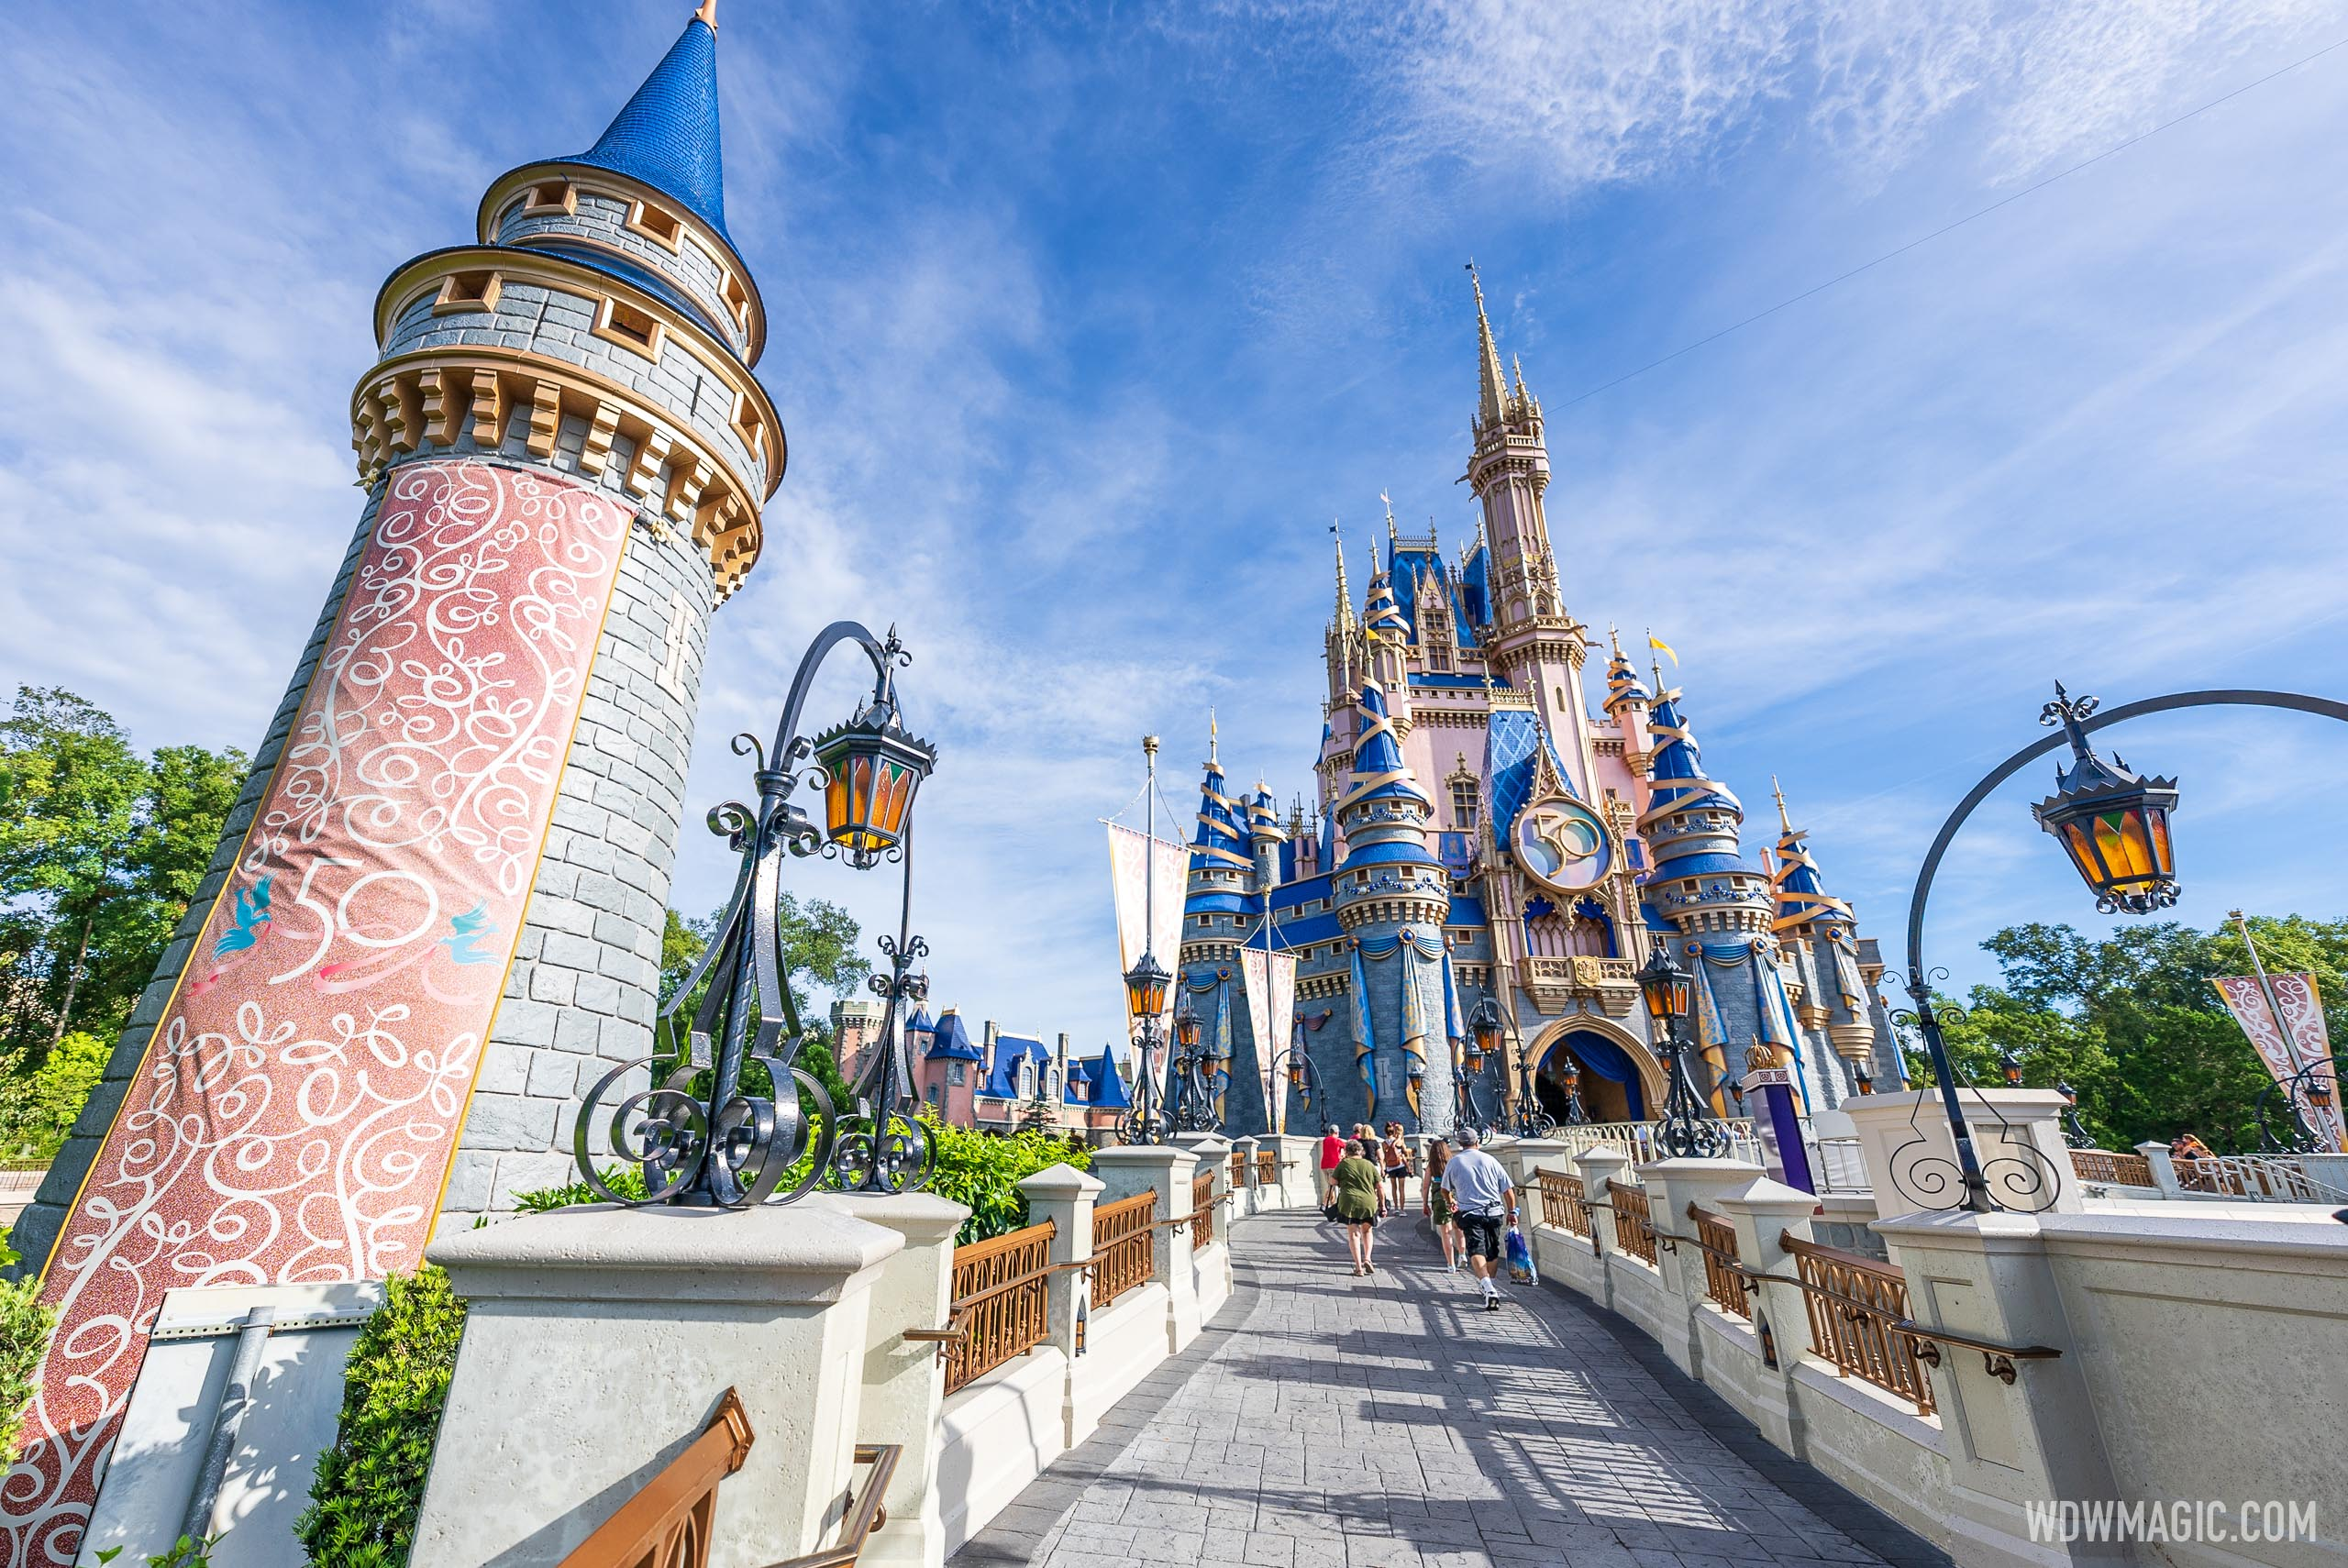 New 50th anniversary banners added to Cinderella Castle at Magic Kingdom